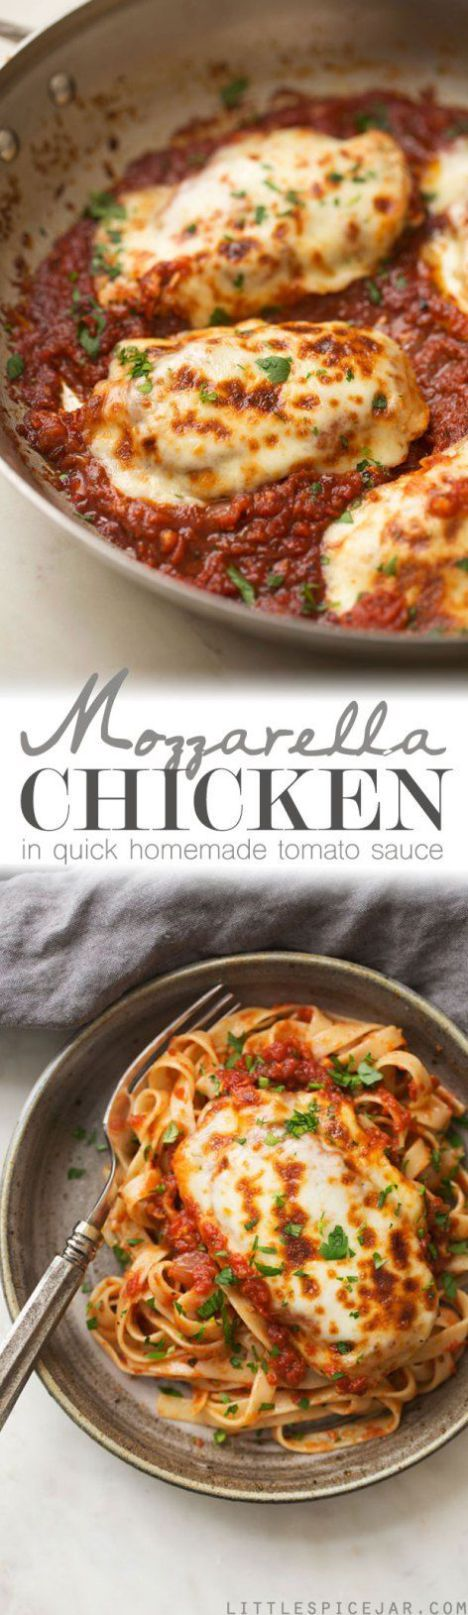 30 Minute Mozzarella Chicken in Tomato Sauce Recipe via Little Spice Jar! A delicious , quick and easy weeknight recipe for chicken smothered in tomato sauce with melty mozzarella! Serve with bread or pasta for a hearty meal. - The BEST 30 Minute Meals Recipes - Easy, Quick and Delicious Family Friendly Lunch and Dinner Ideas